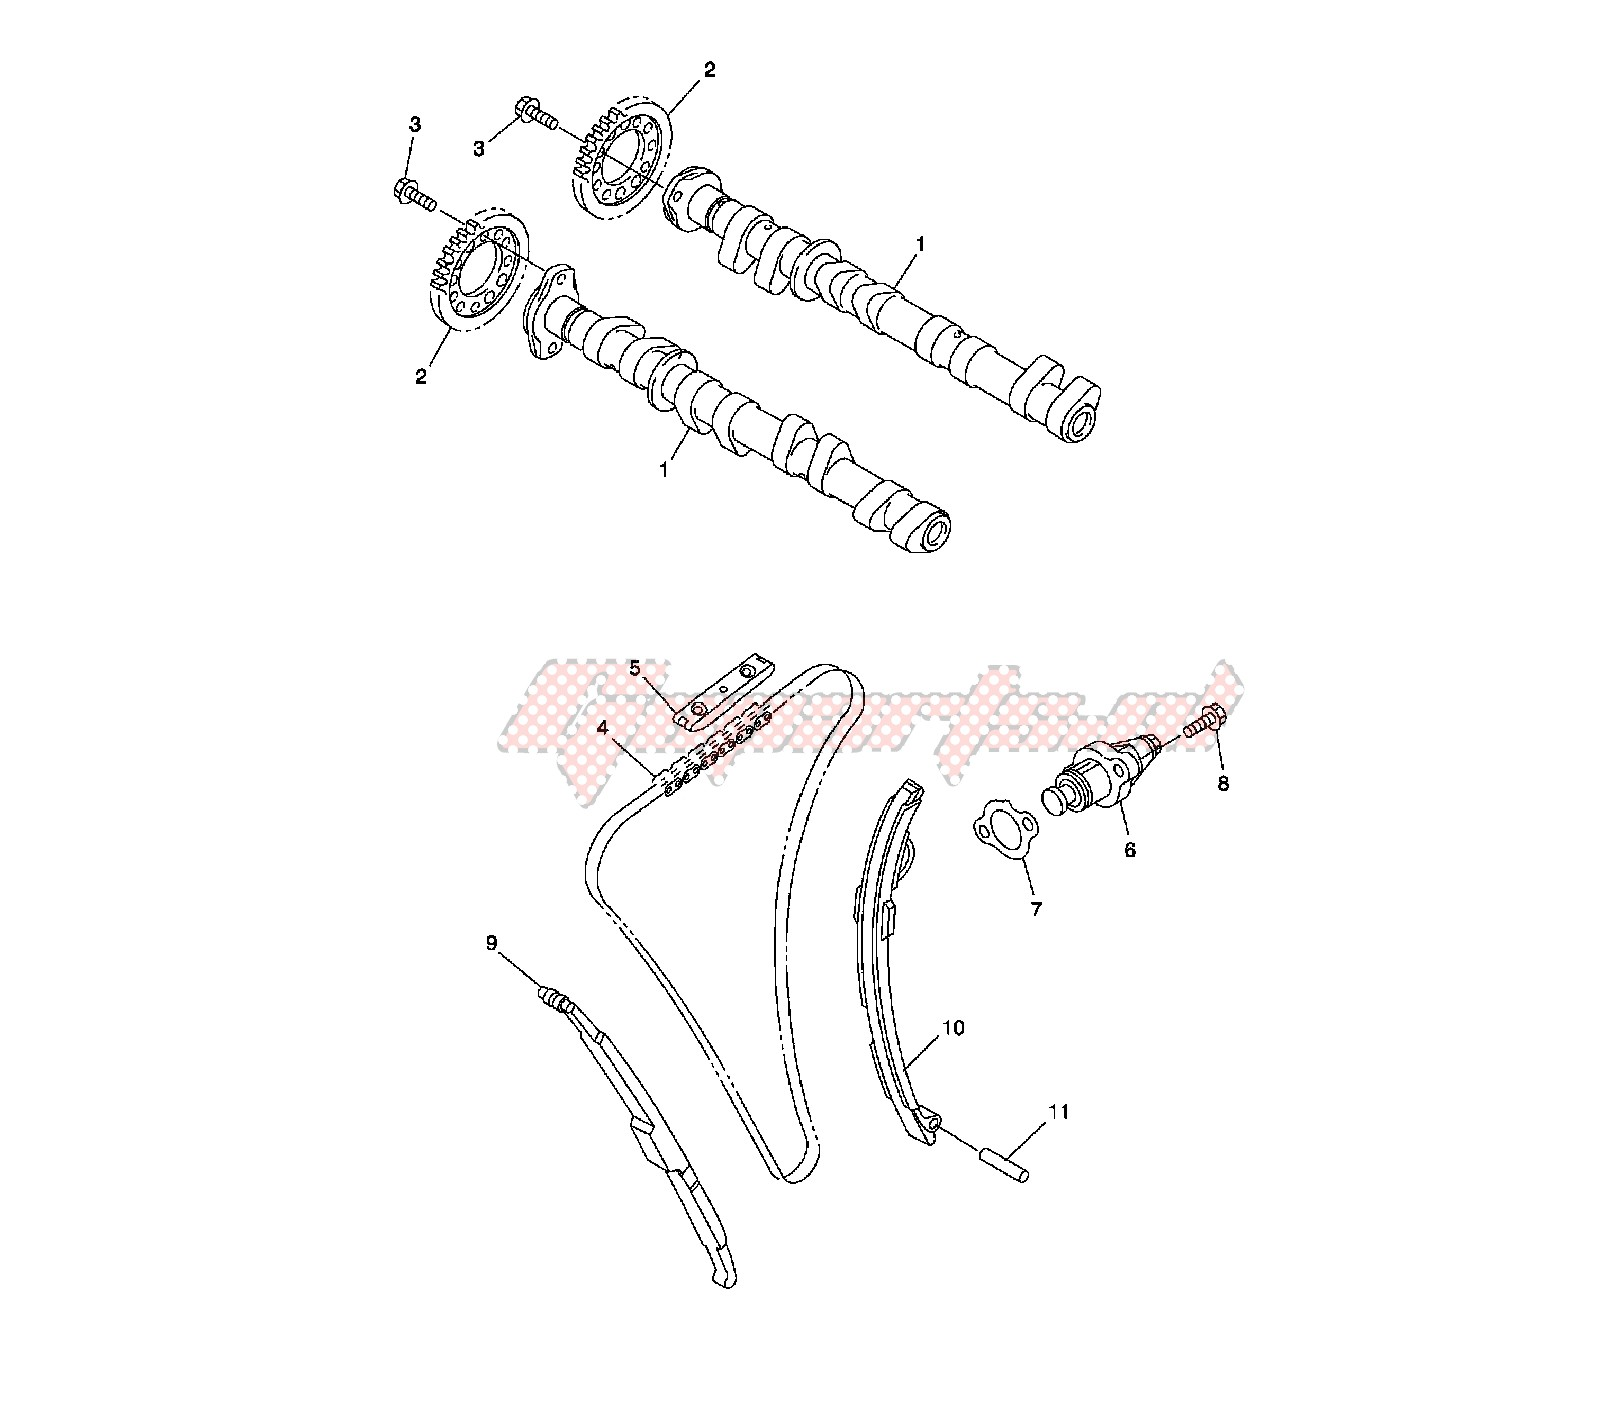 CAMSHAFT AND TIMING CHAIN image